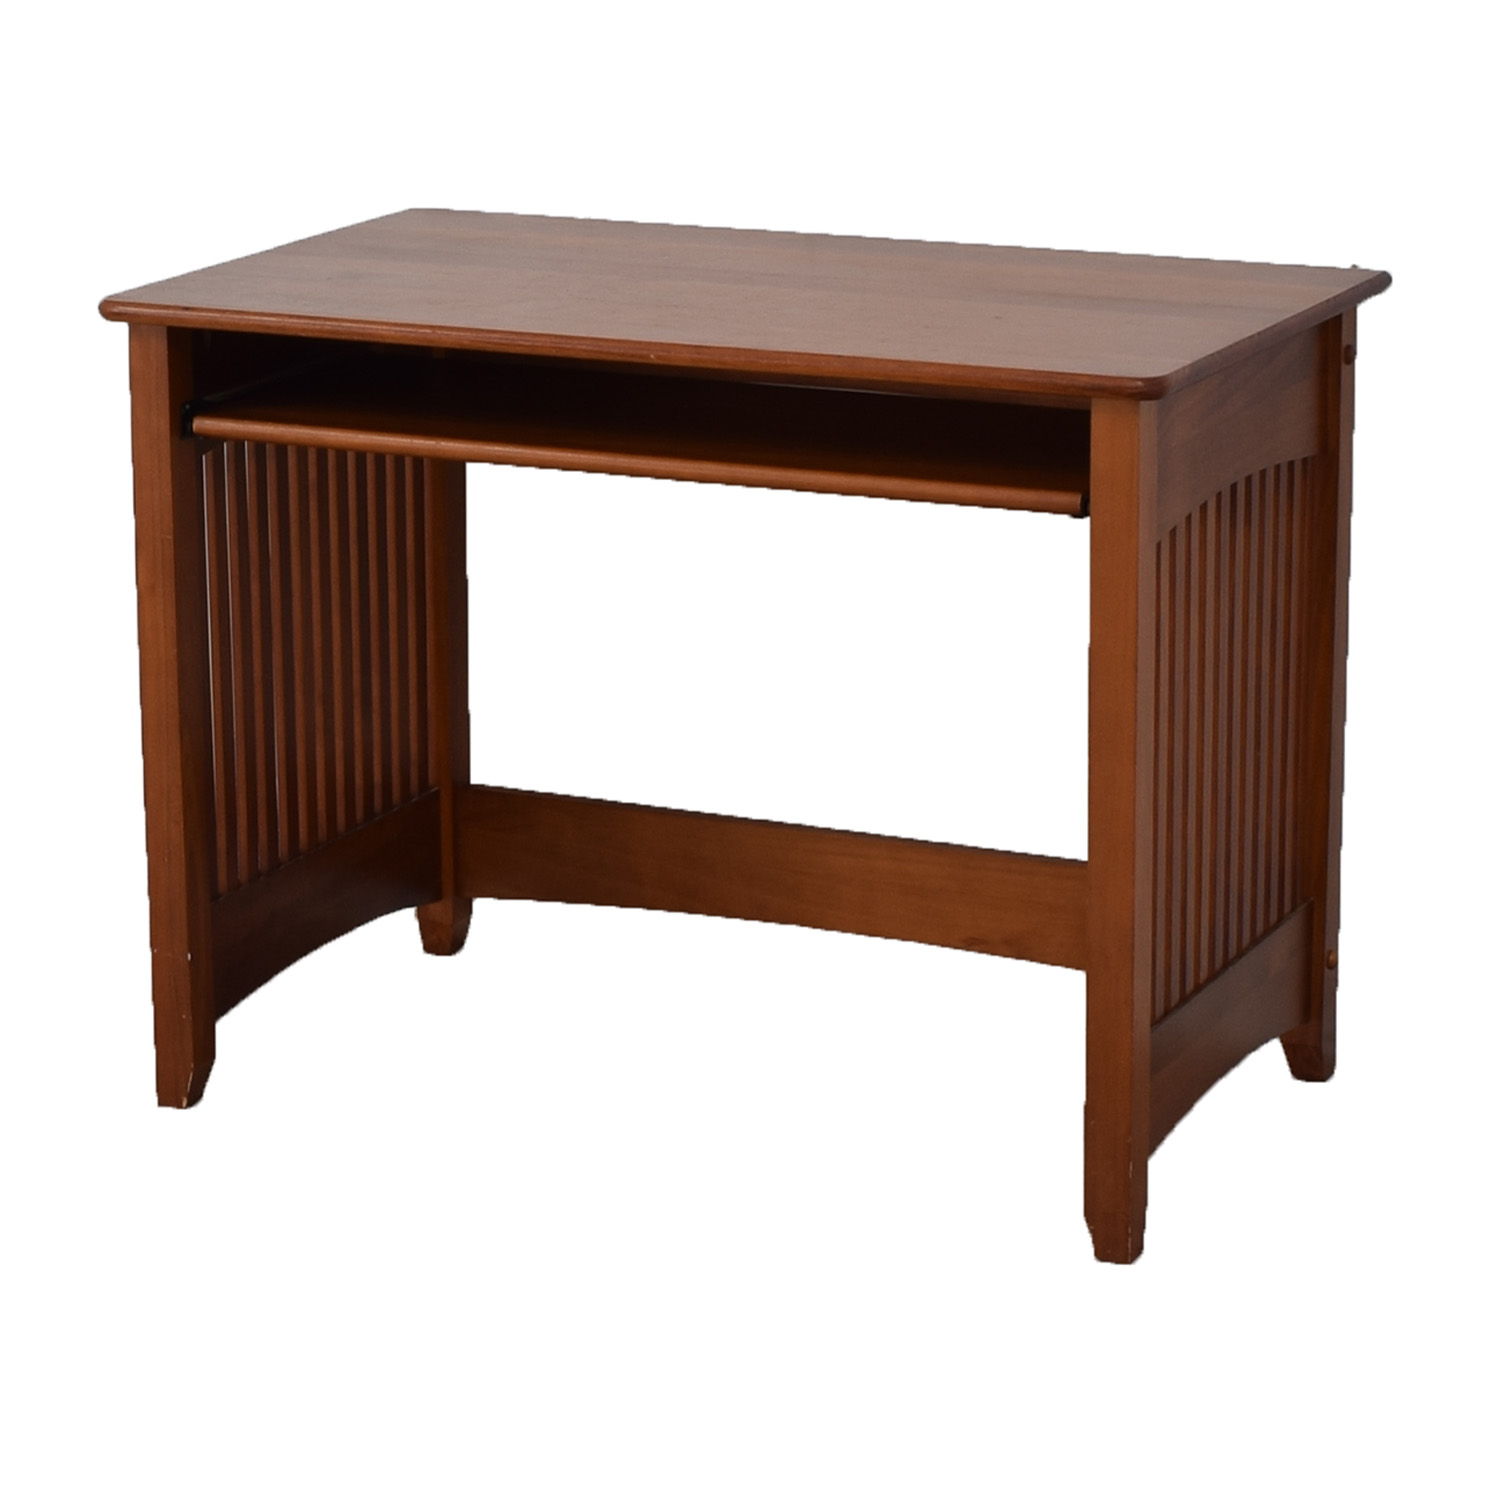 super popular 9ced9 c5f93 50% OFF - Wood Computer Desk with Key Board Tray / Tables